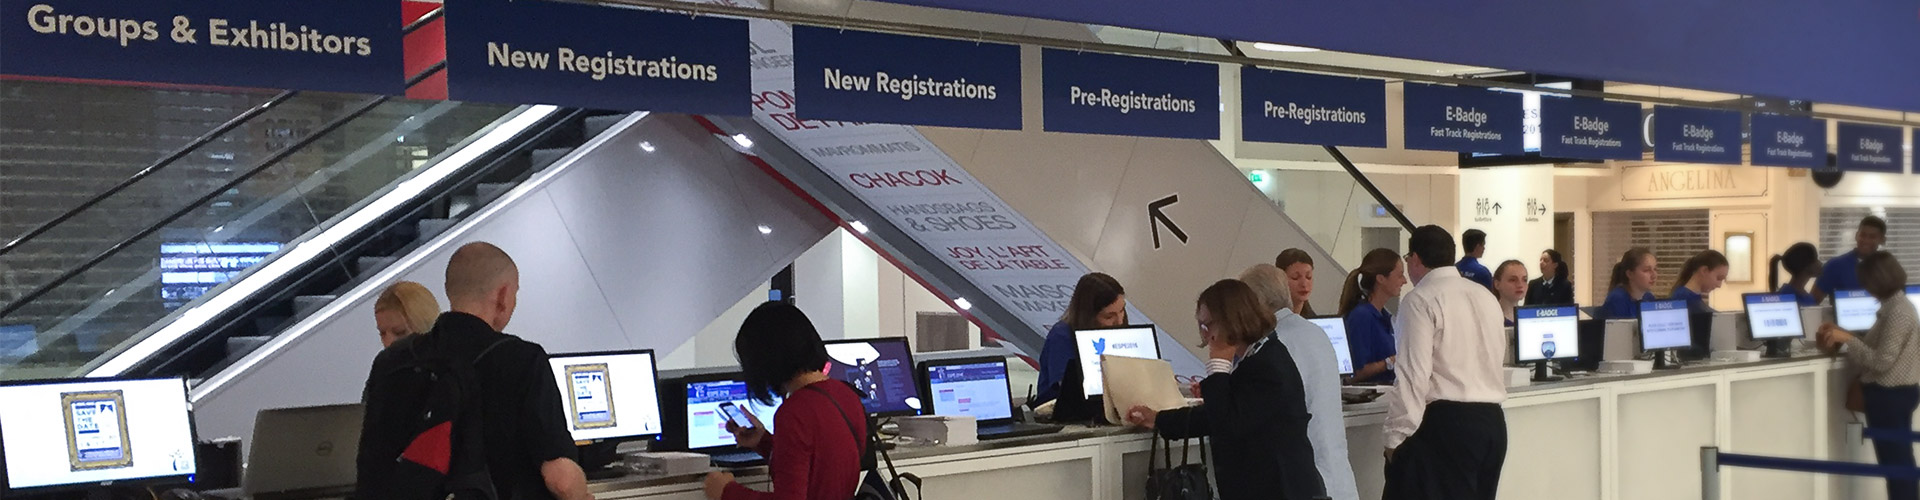 Manned registration desks (RegDesk)